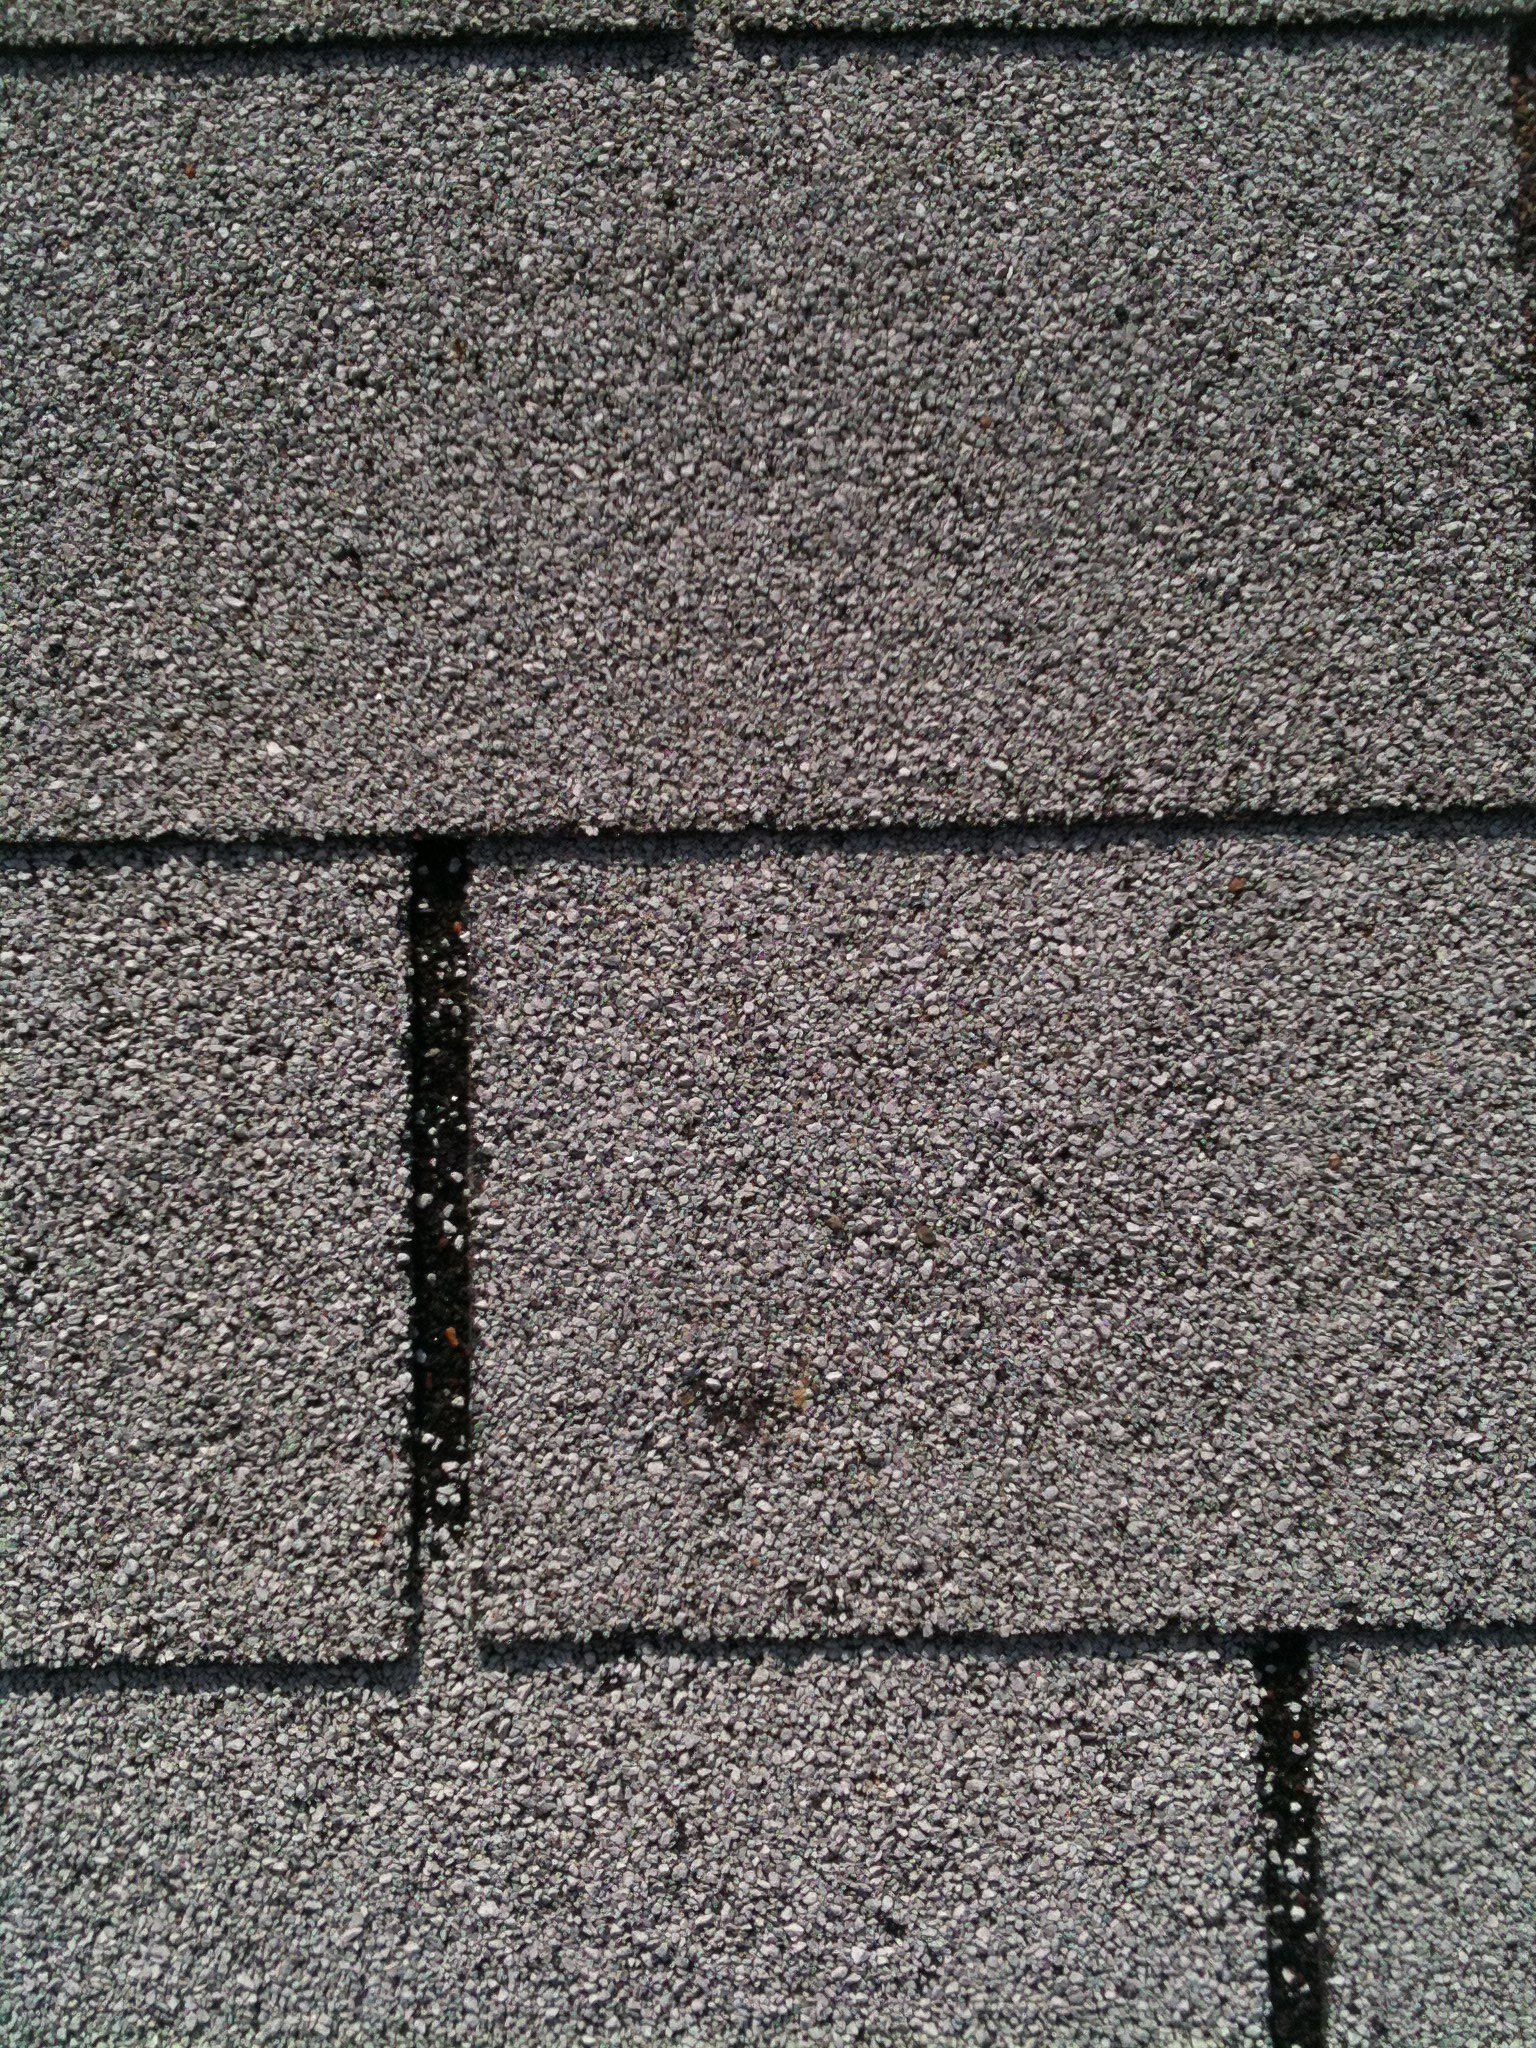 Roof Shingle Hail Damage Example Waco Roofer